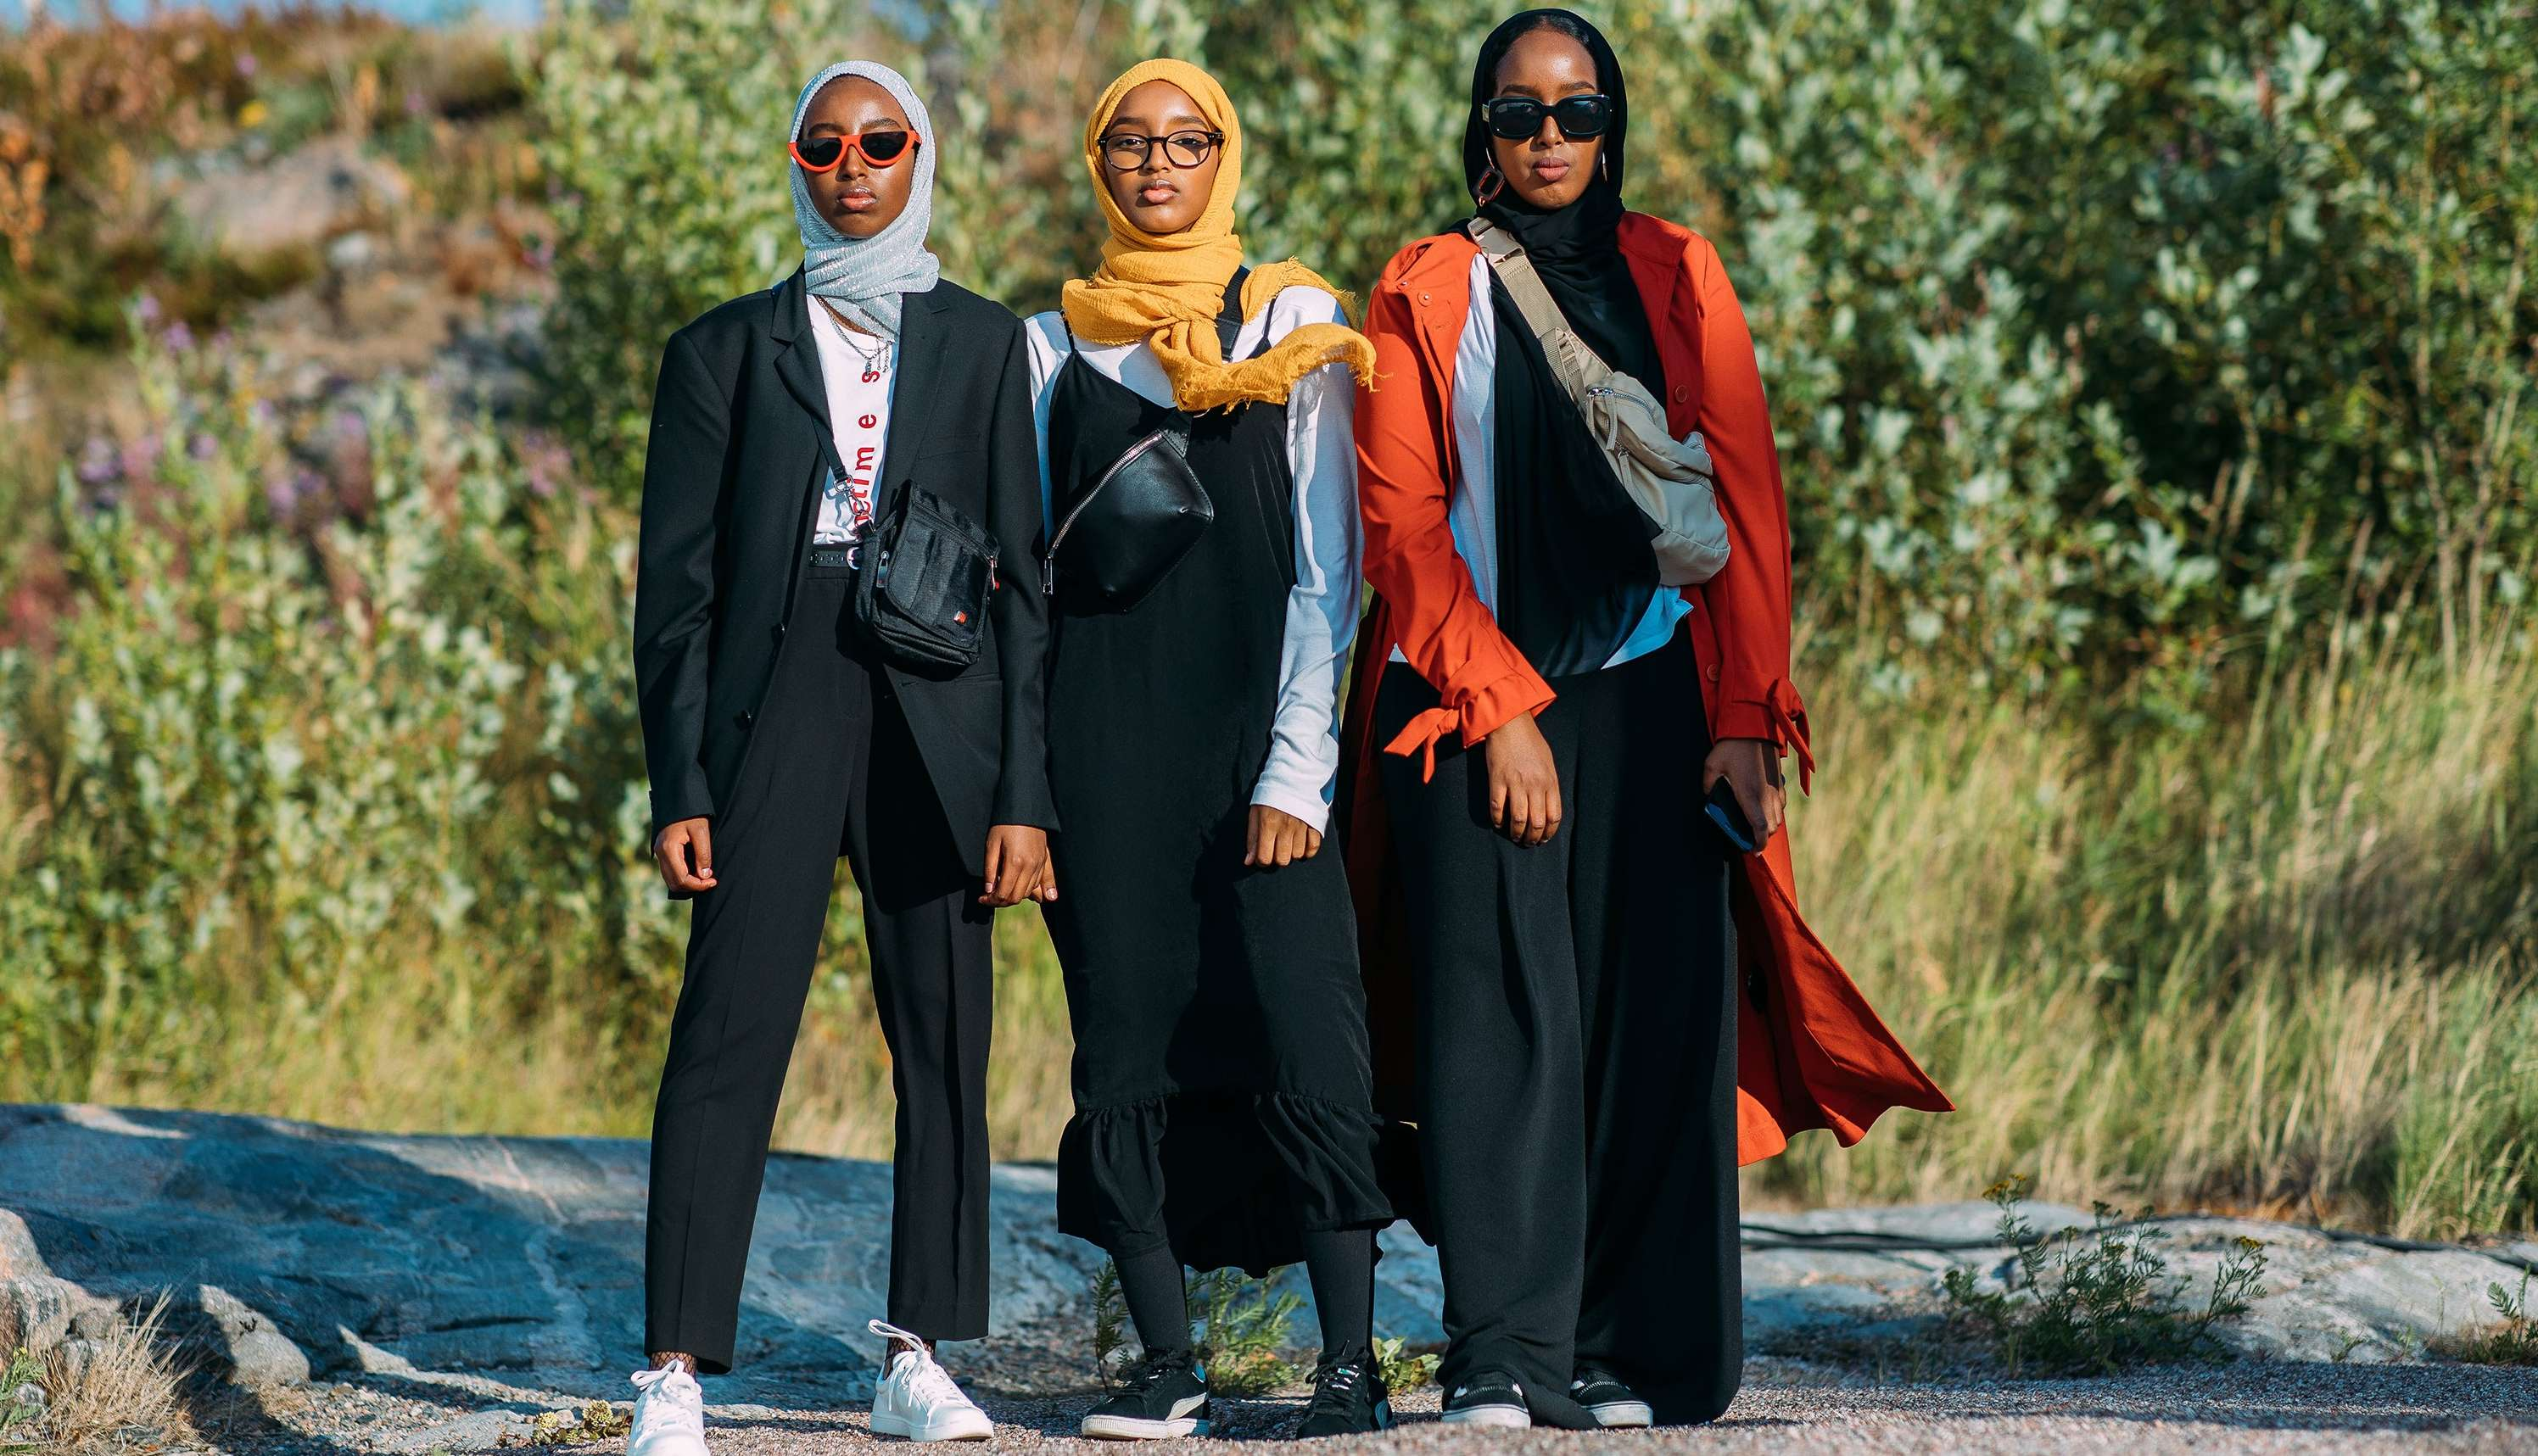 Street Styles From Helsinki Fashion Week Spring 2019